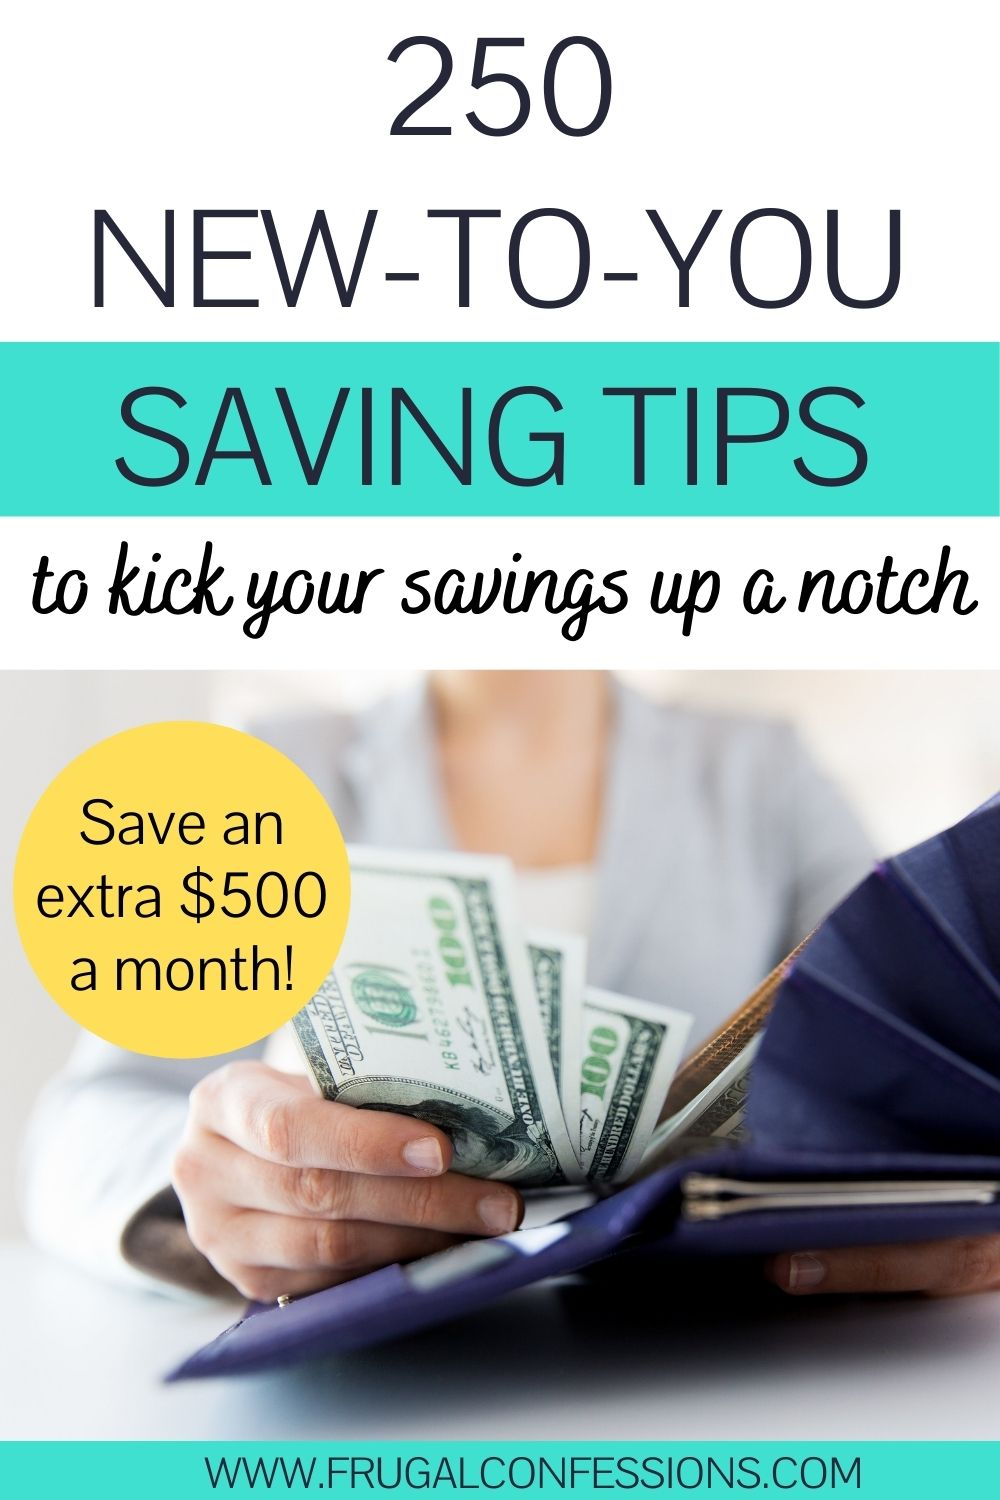 """woman putting cash into navy blue wallet, text overlay """"250 new to you money saving tips to kick your savings up a notch"""""""